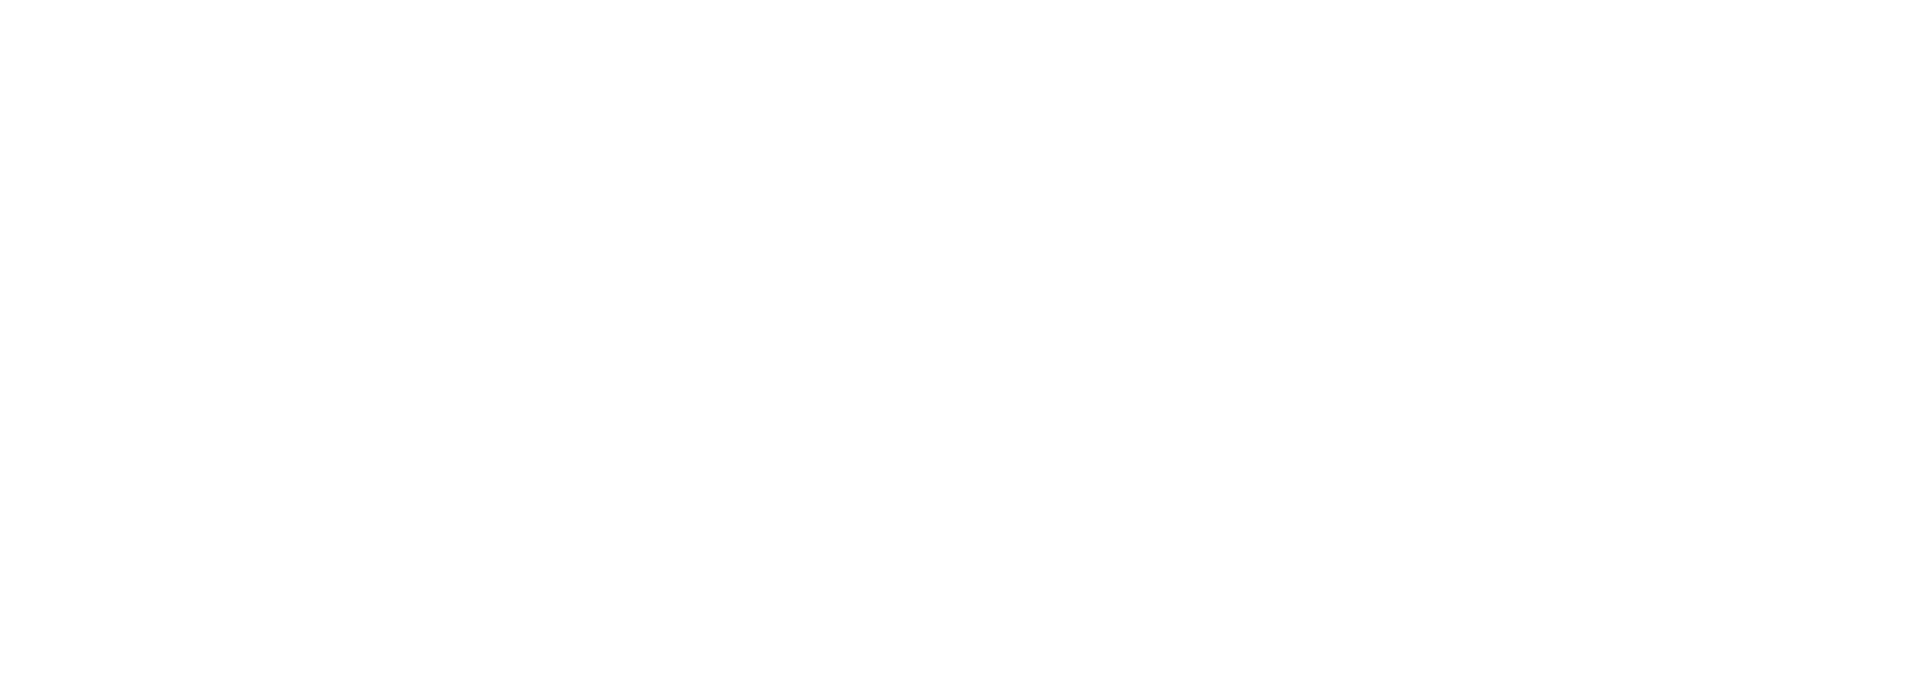 Your time is your own. Work at your own pace, on your own time and set up your own schedule.